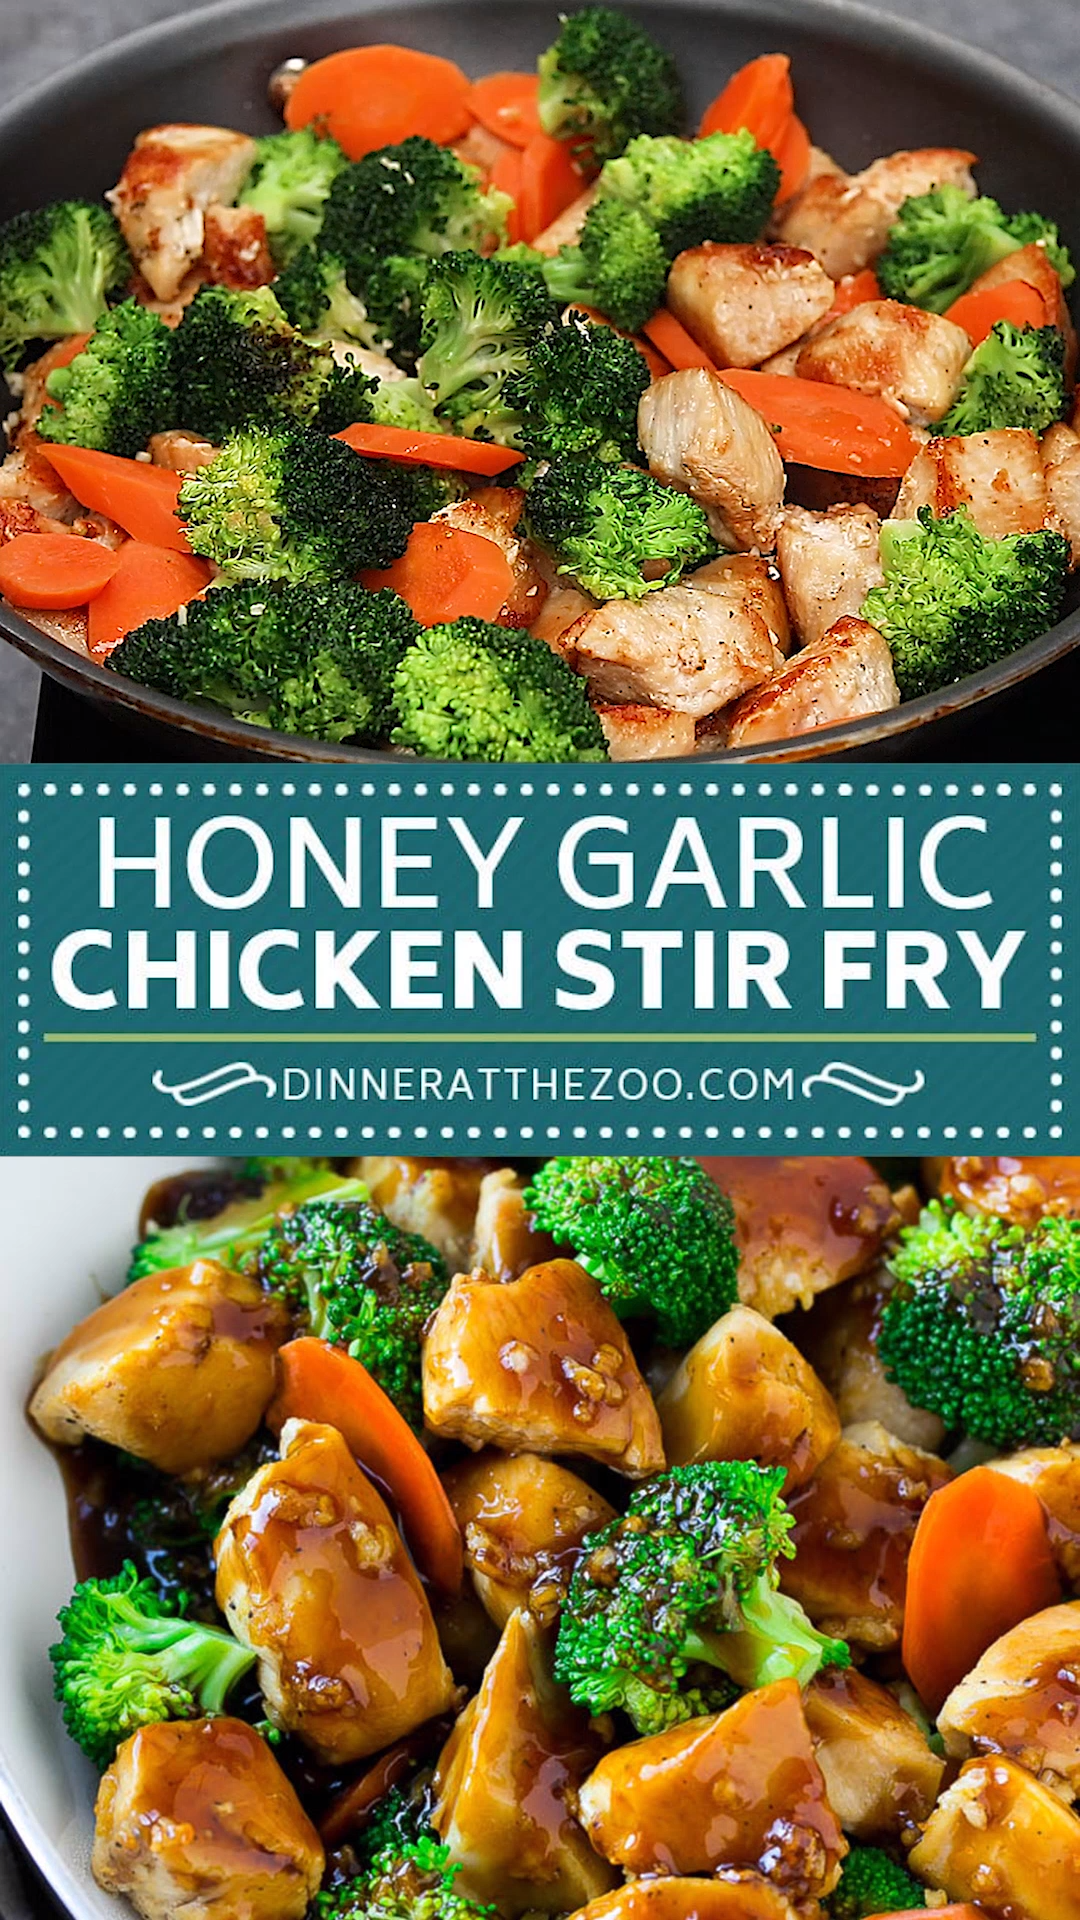 Honey garlic chicken stir fry with broccoli and carrots is a healthy dinner choice. #chicken #stirfry #healthy #dinneratthezoo